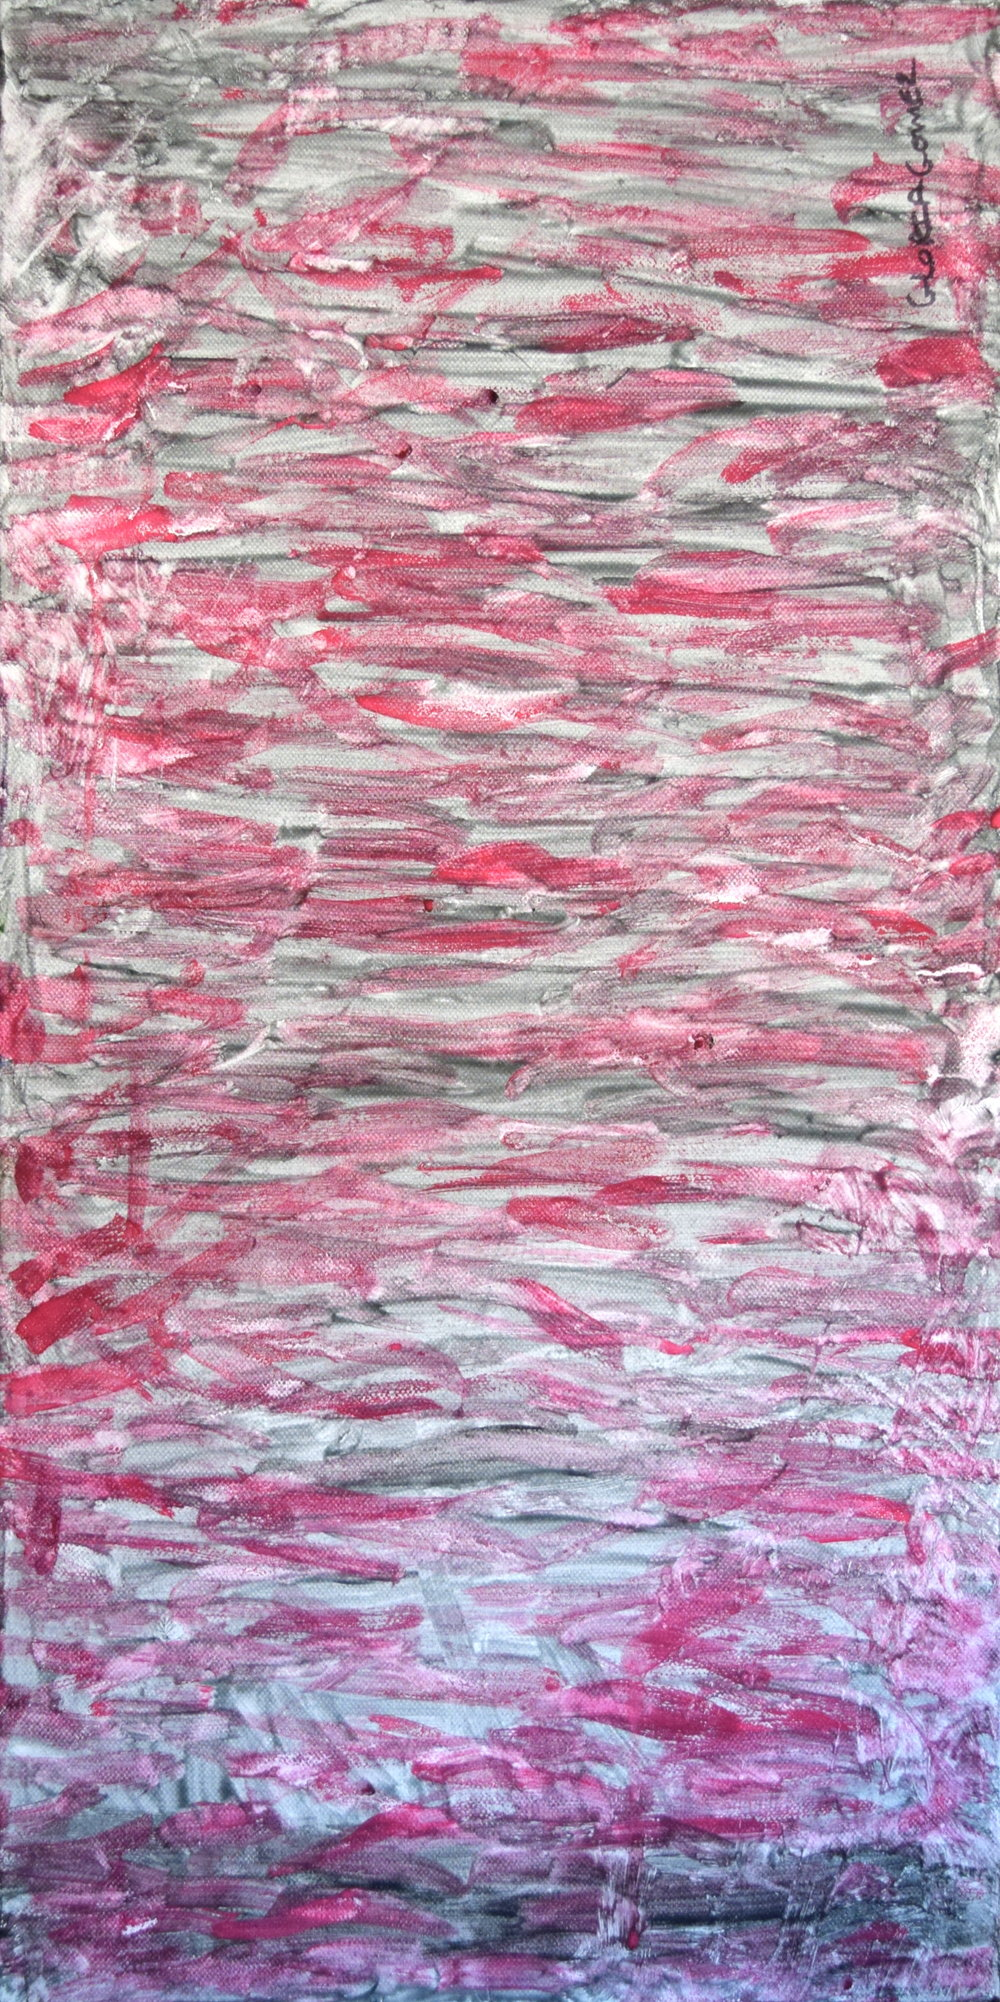 Abstract Nine 12 x 30, Acrylic on Canvas $100